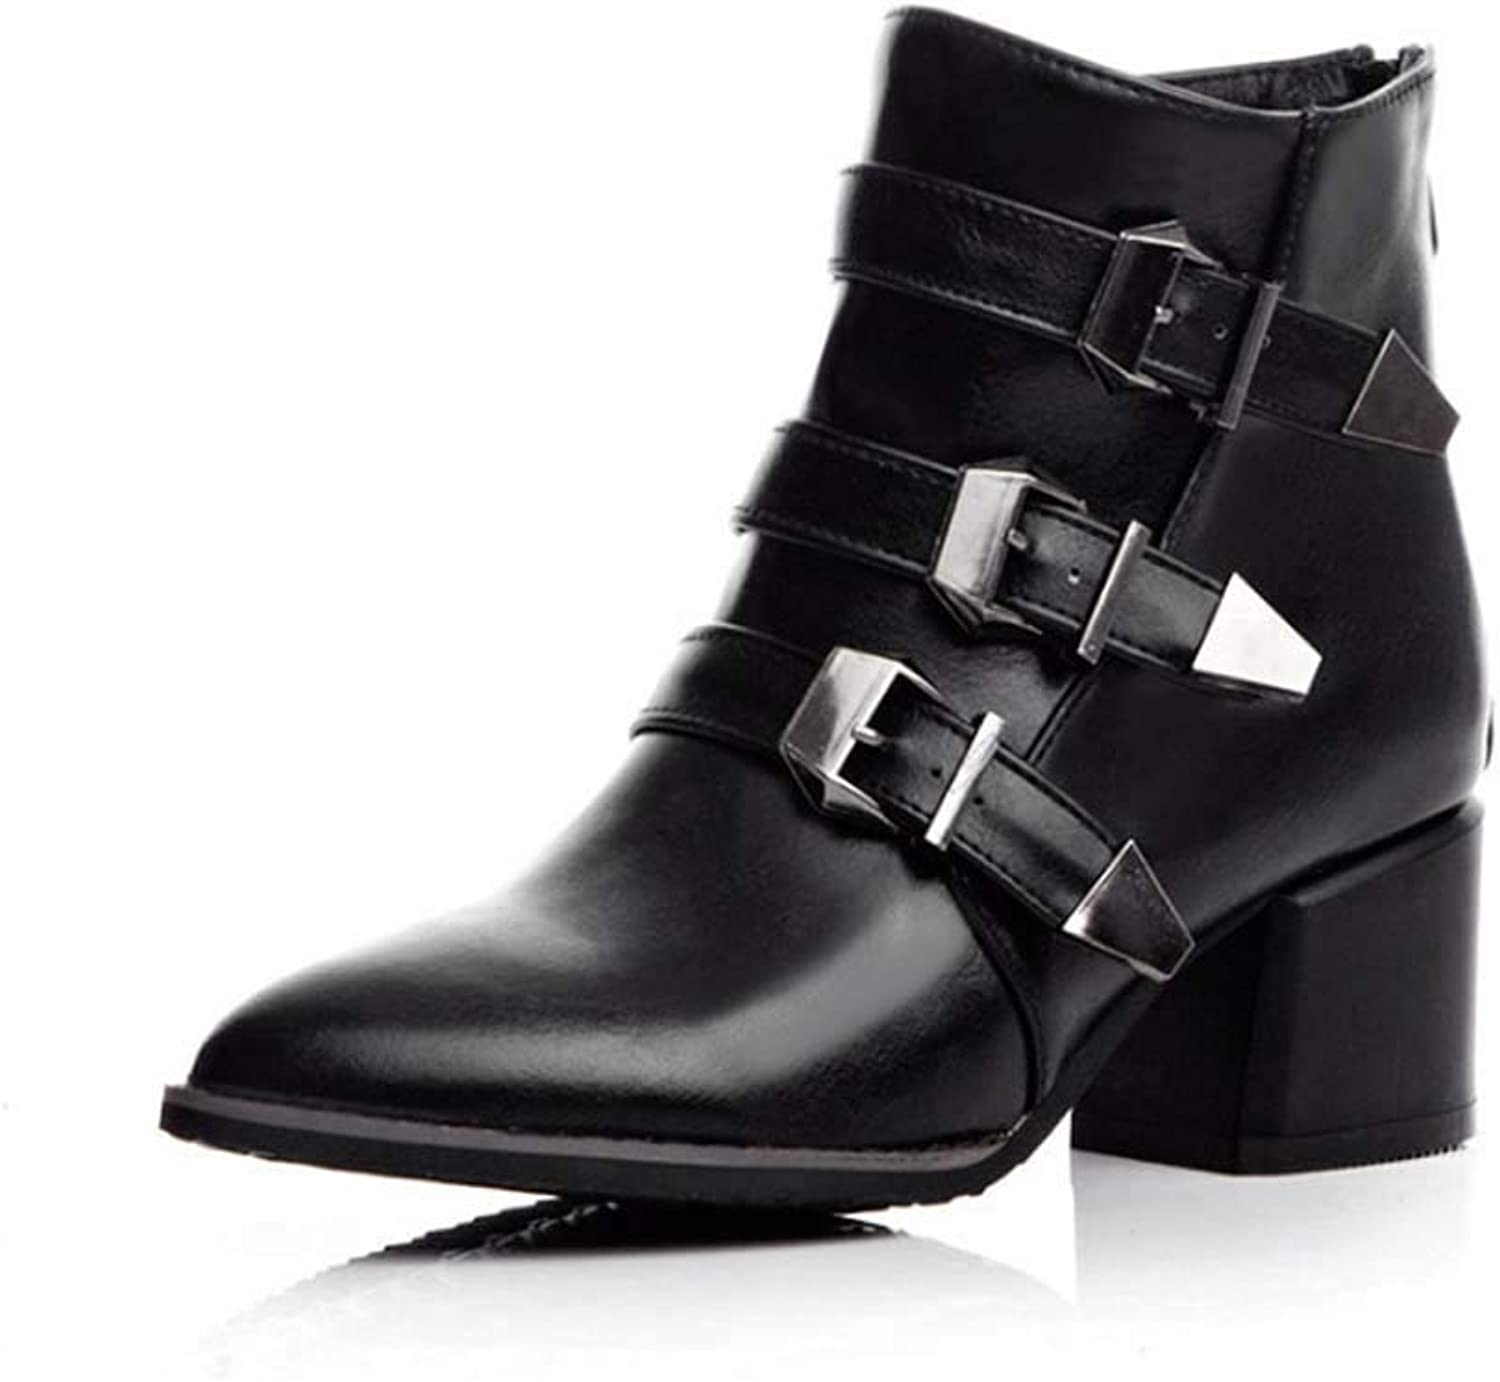 Women Ankle Boots,Leather Pointed Boots Round Chunky Block Heel Boots Winter Boots Flat Boots Short Boots Ladies Chelsea Boots,Black,35EU